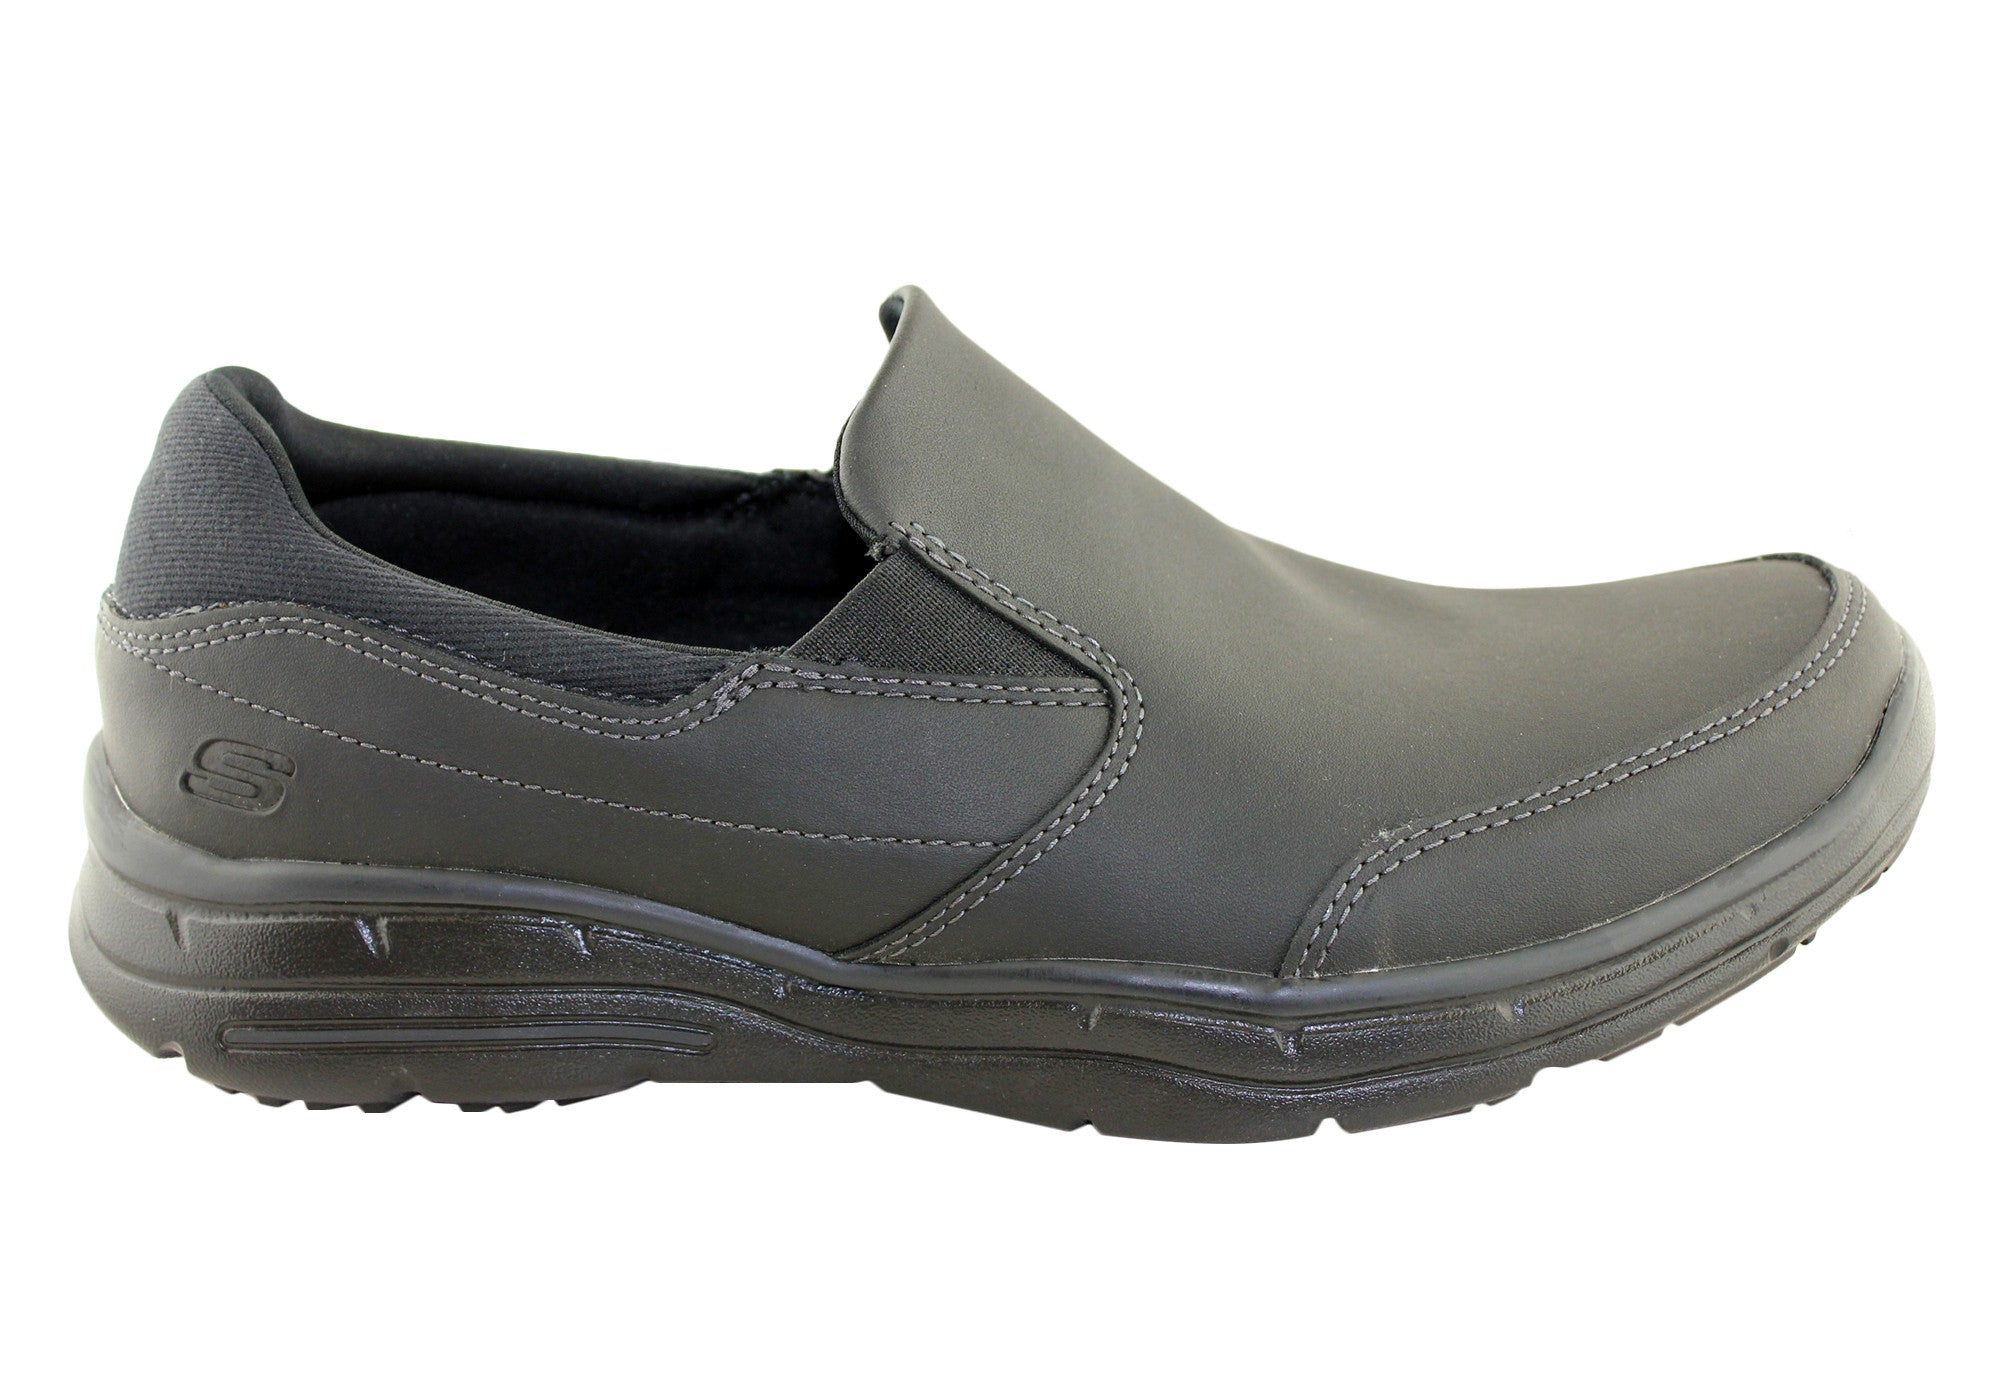 9c2ae7a7c57c Home Skechers Mens Glides Calculous Relaxed Fit Shoes. Black ...